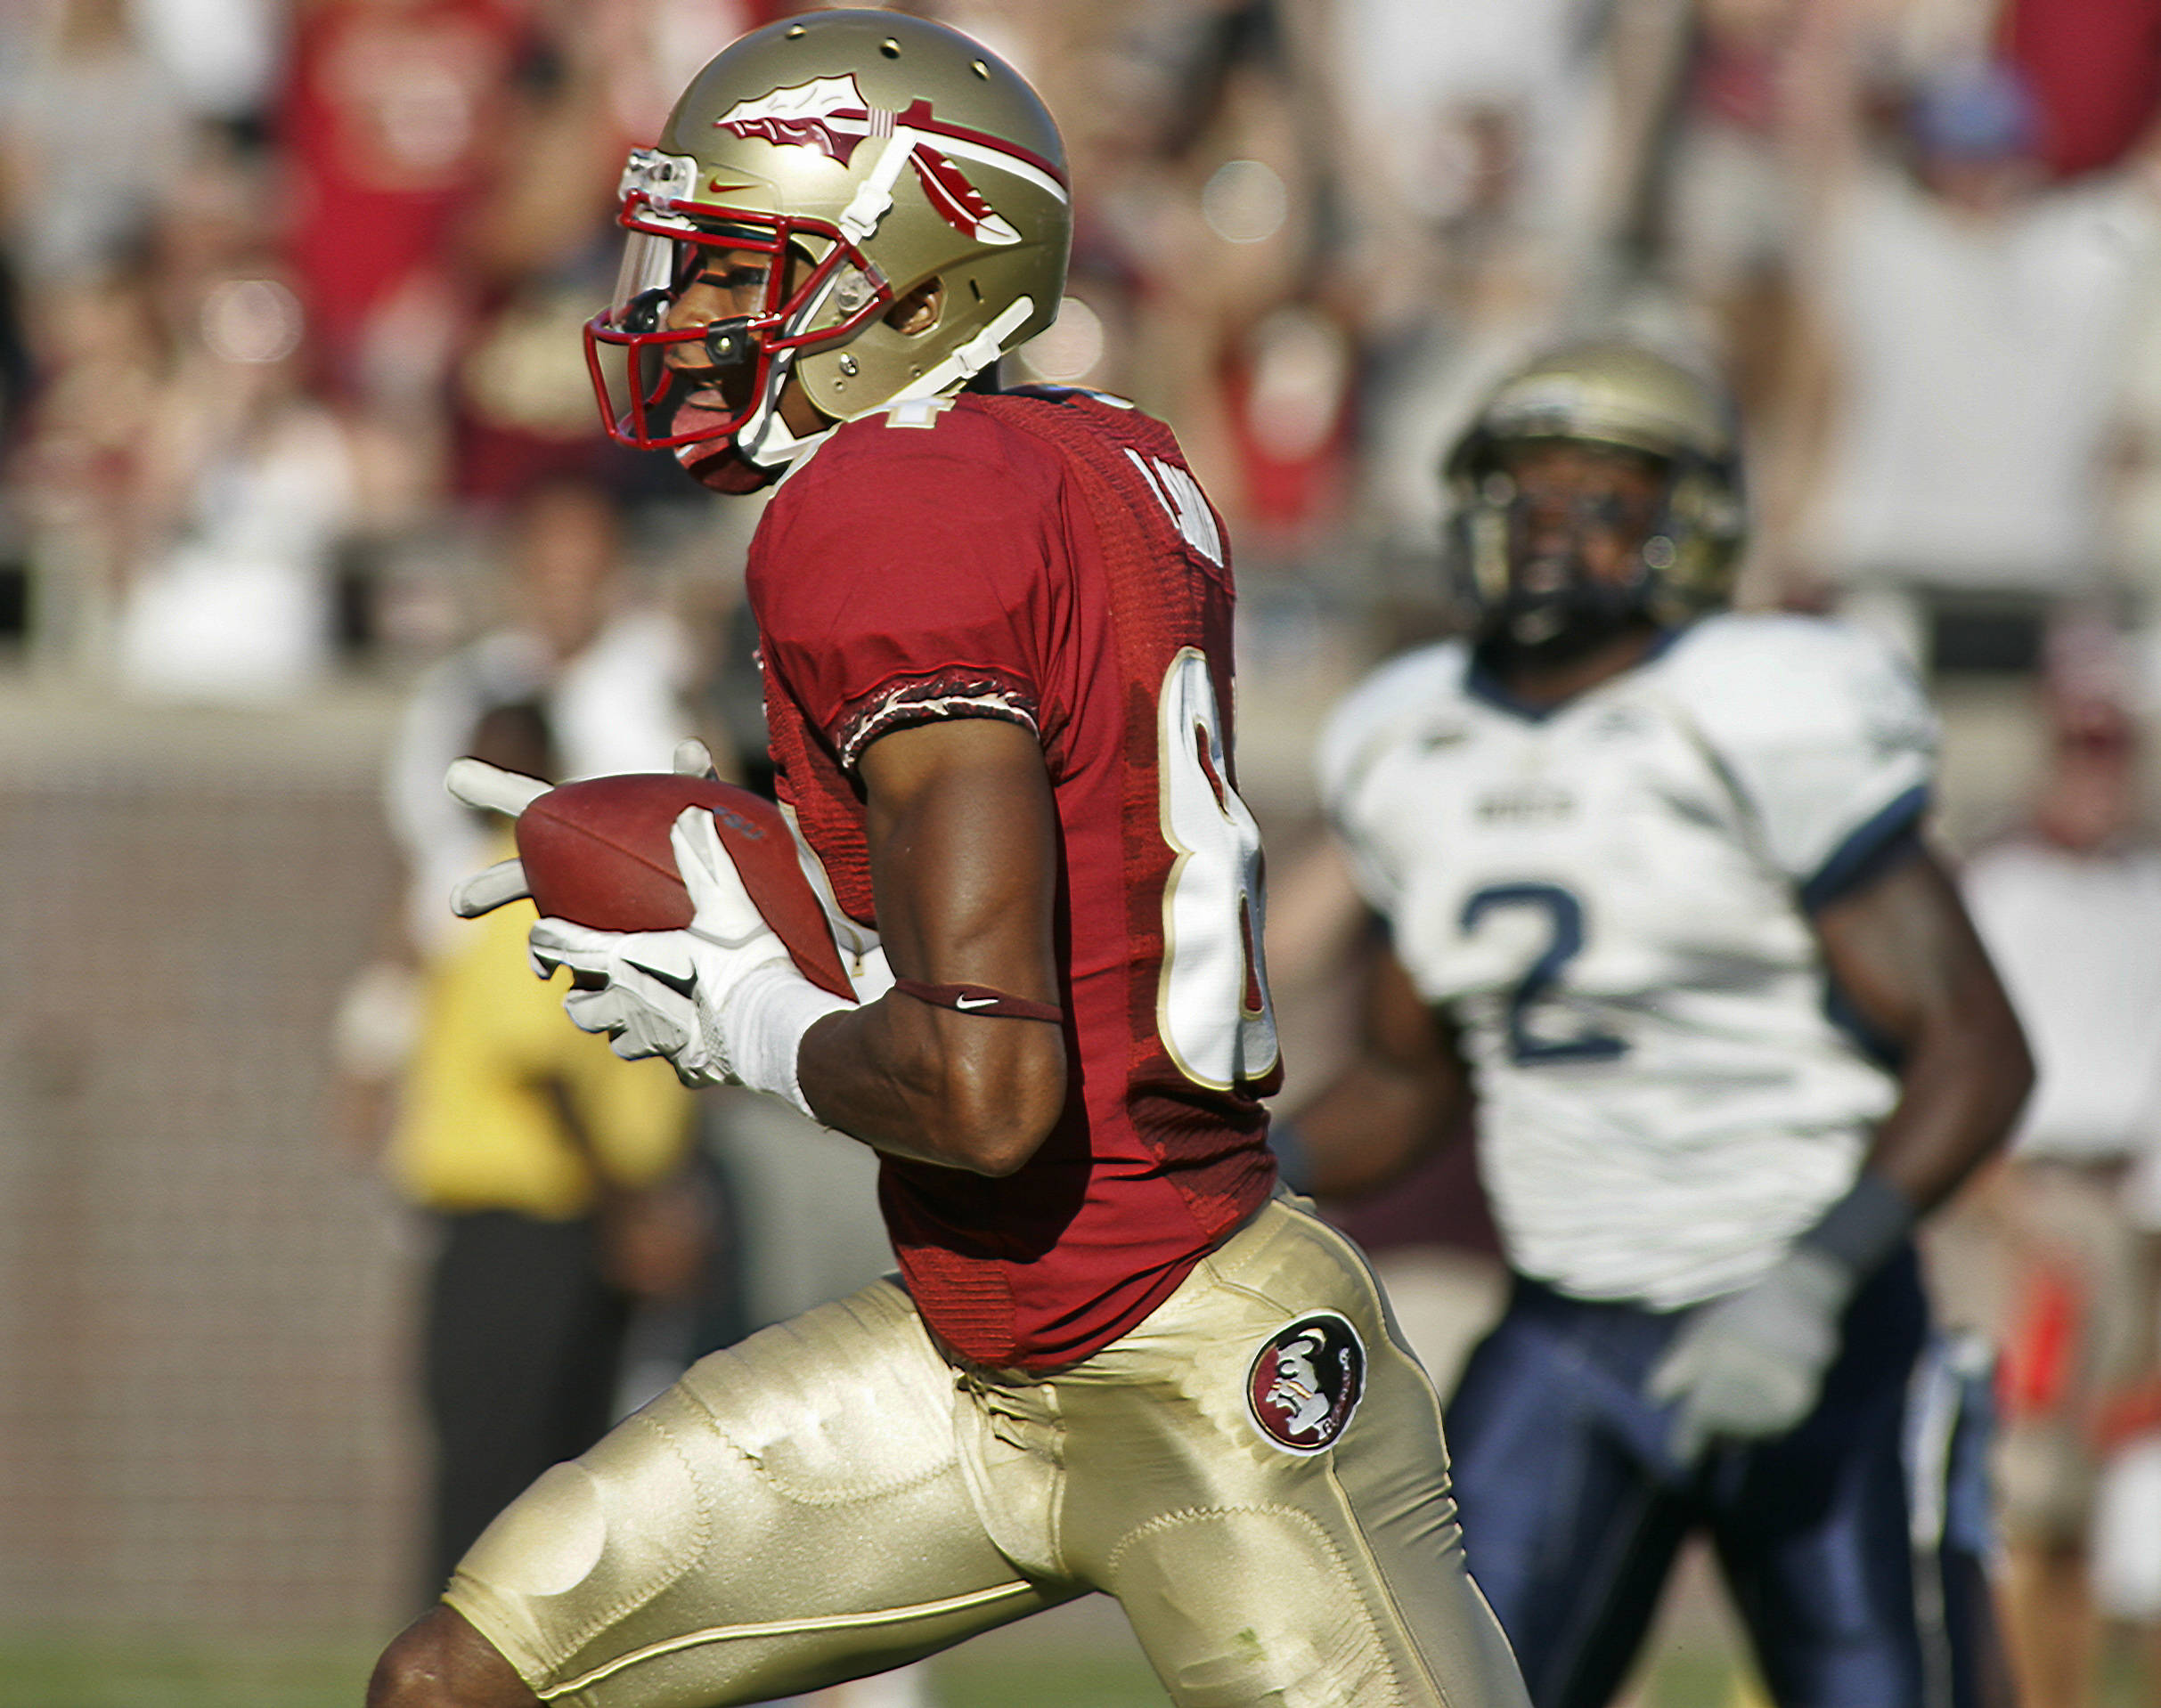 Florida State wide receiver Rodney Smith (84) scores a touchdown on a 45-yard pass as Charleston Southern defensive back O'Brian Campbell (2) can't catch him in the first quarter of an NCAA college football game on Saturday, Sept. 10, 2011, in Tallahassee, Fla. (AP Photo/Phil Sears)